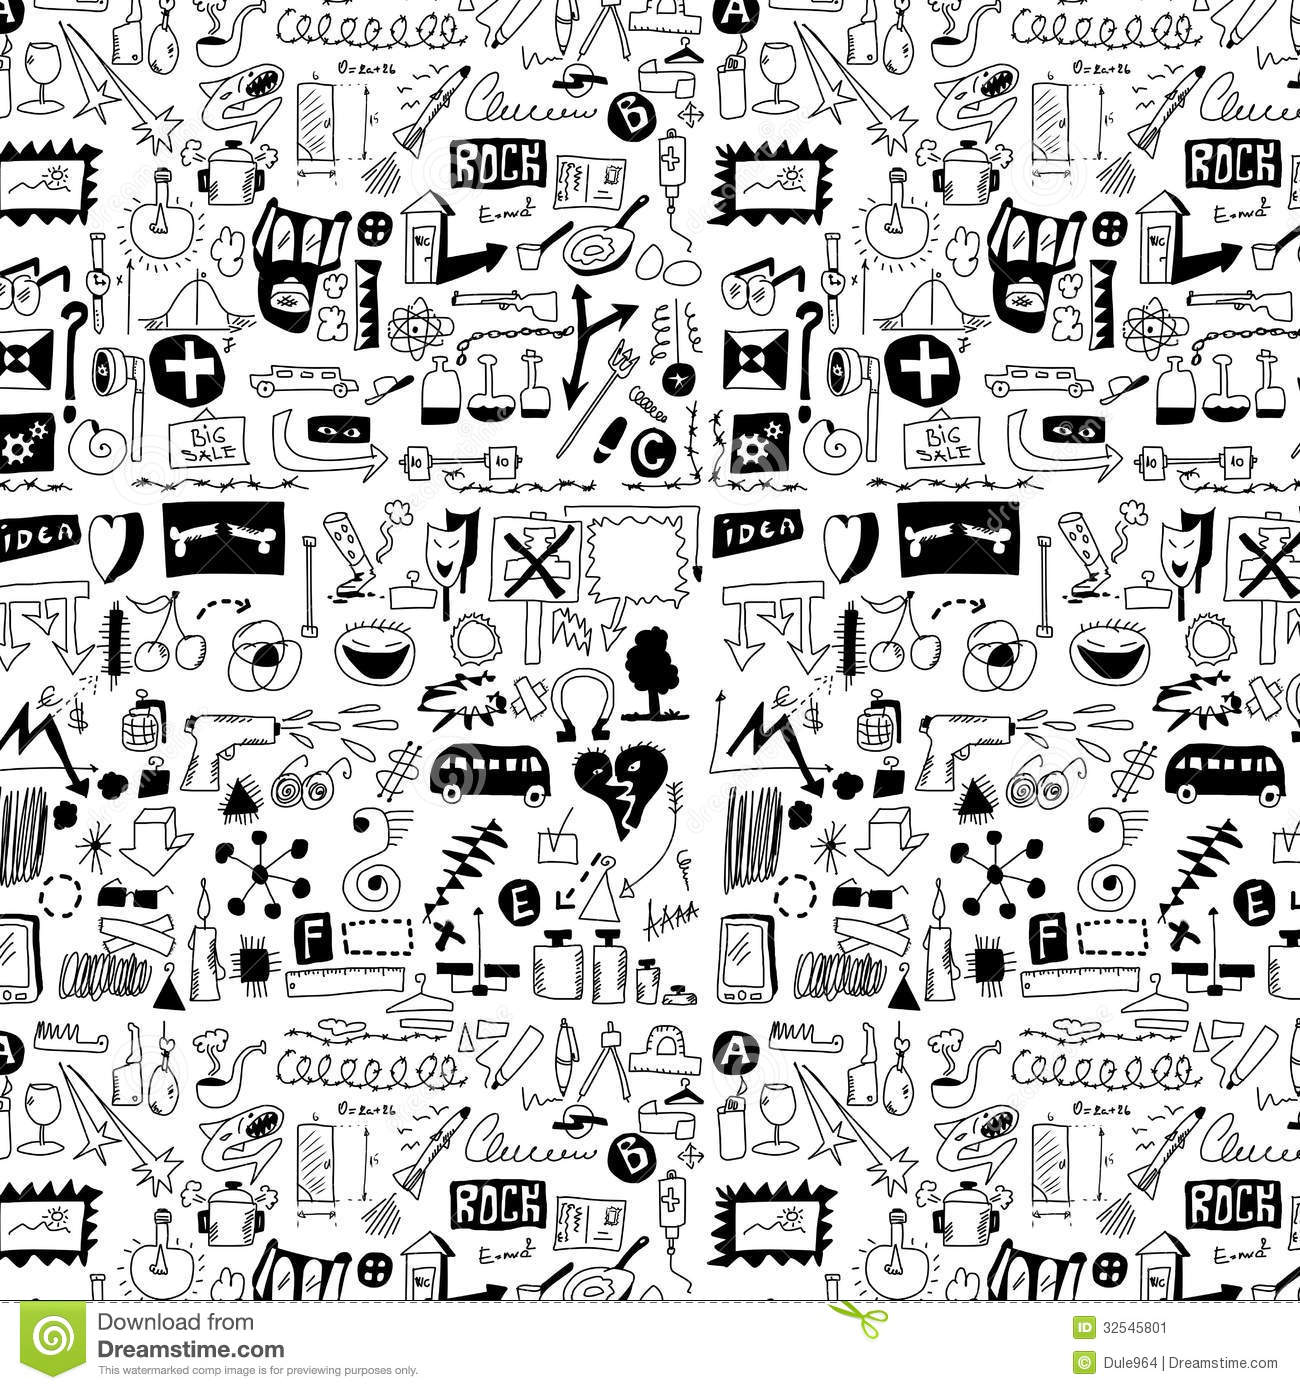 Design Elements Doodle Icons Hand Drawn Stock Image